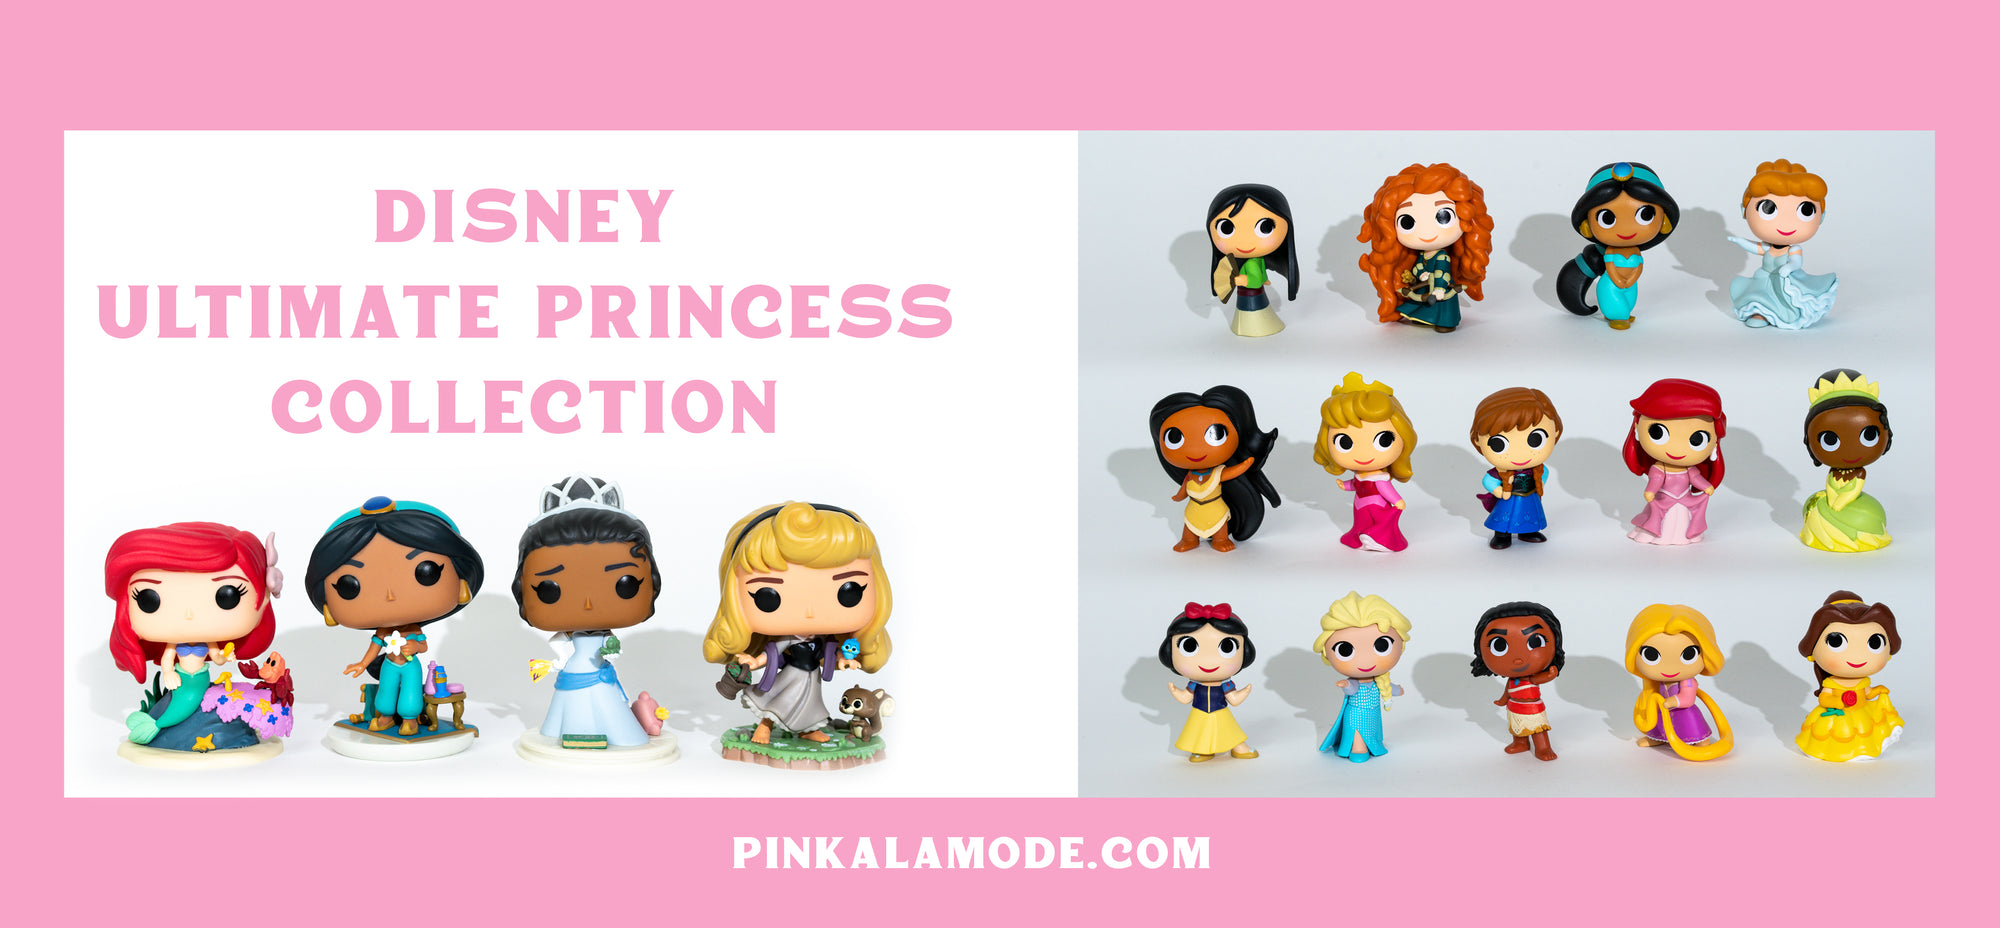 Disney's Ultimate Princess Collection!